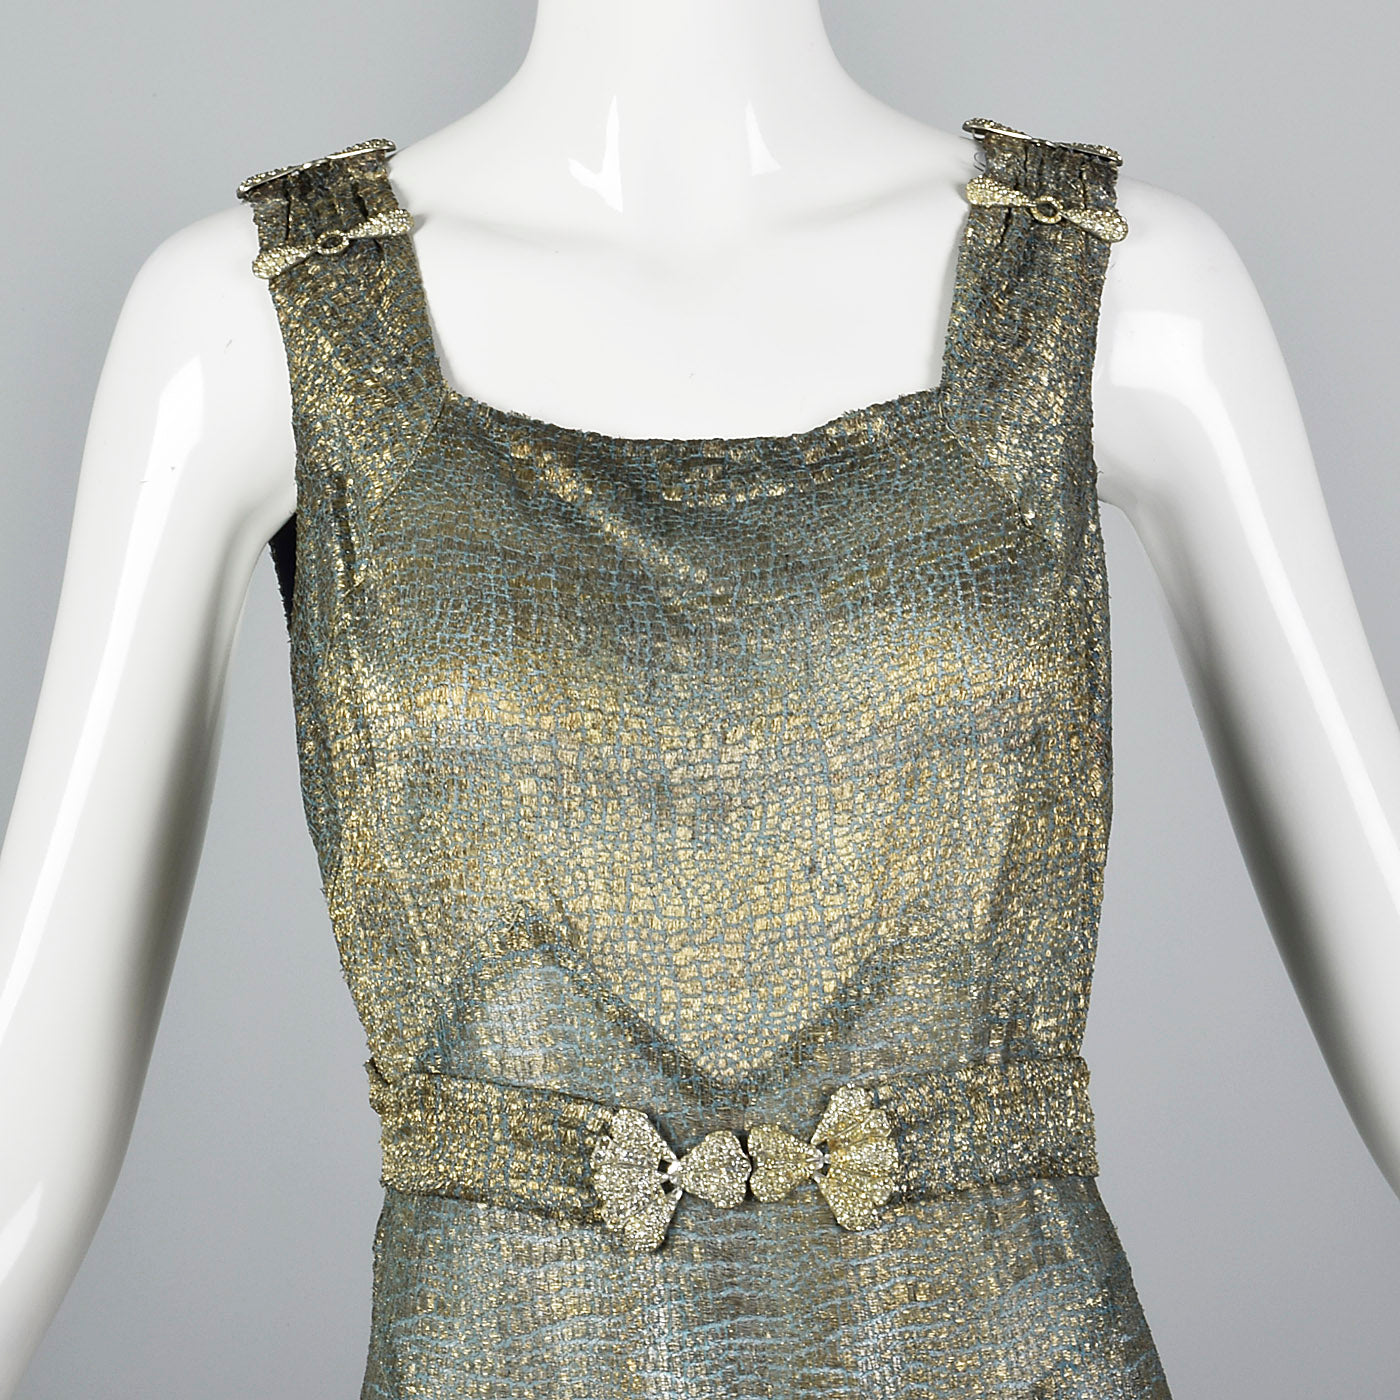 1930s Hollywood Glamour Gold Metal Evening Dress